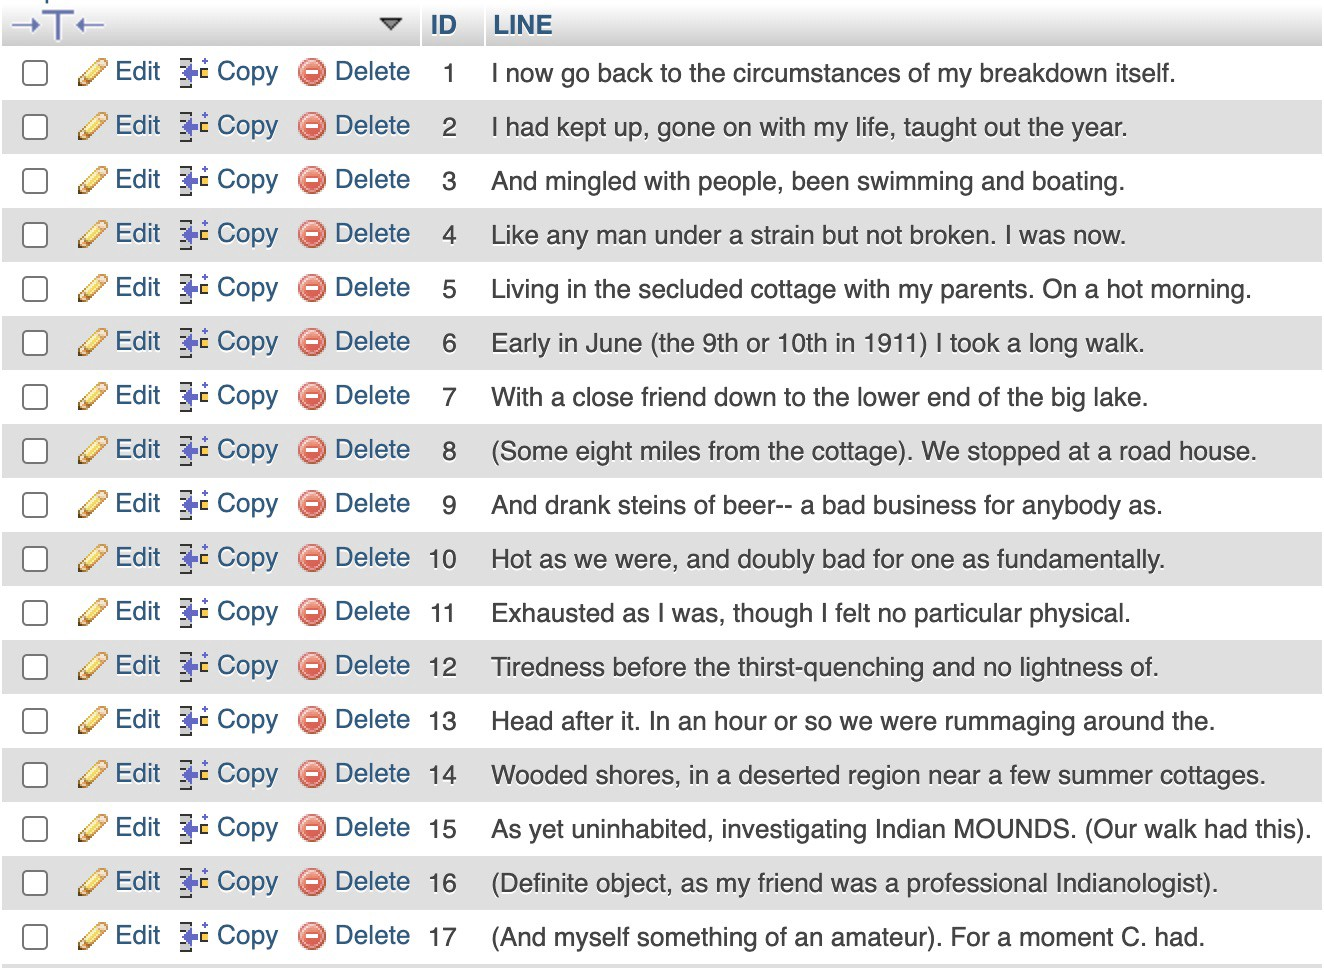 First 17 lines of project relational database table, featuring text from William Ellery Leonard's personal narrative.